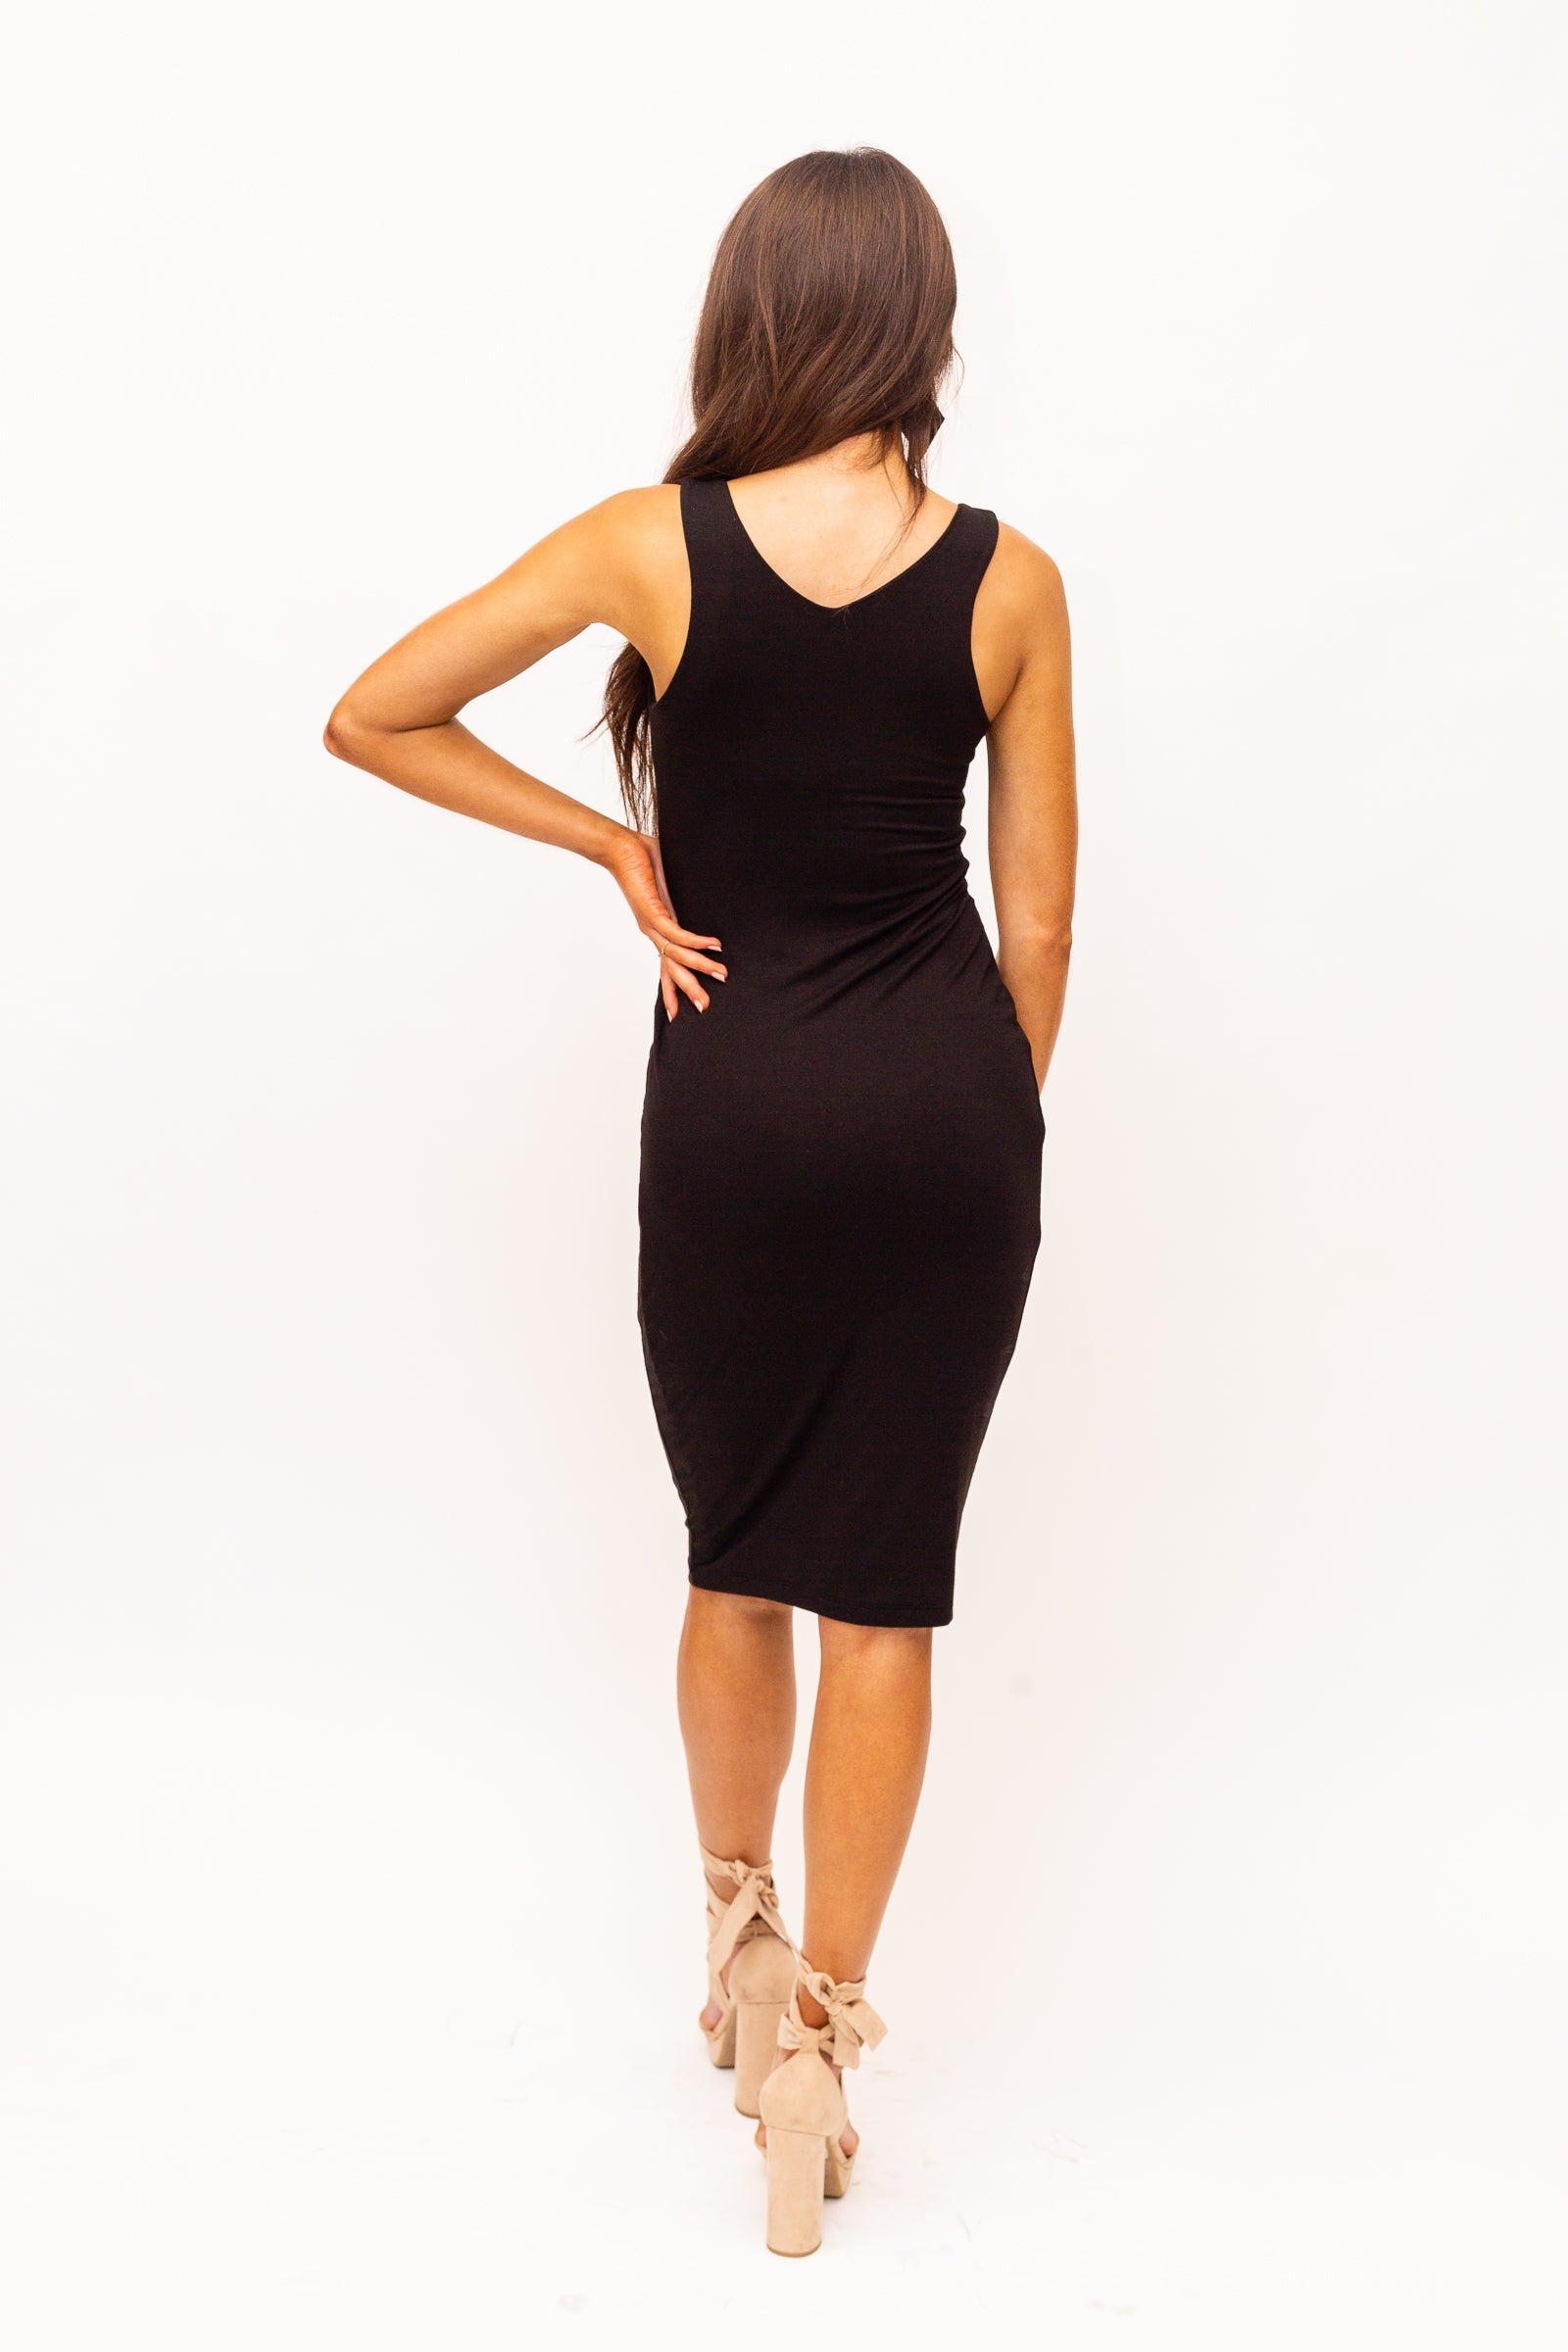 Ultrasoft and comfortable dual-layered dress. Medium straps attach to a v-neckline on a fitted bodycon bodice and skirt silhouette.